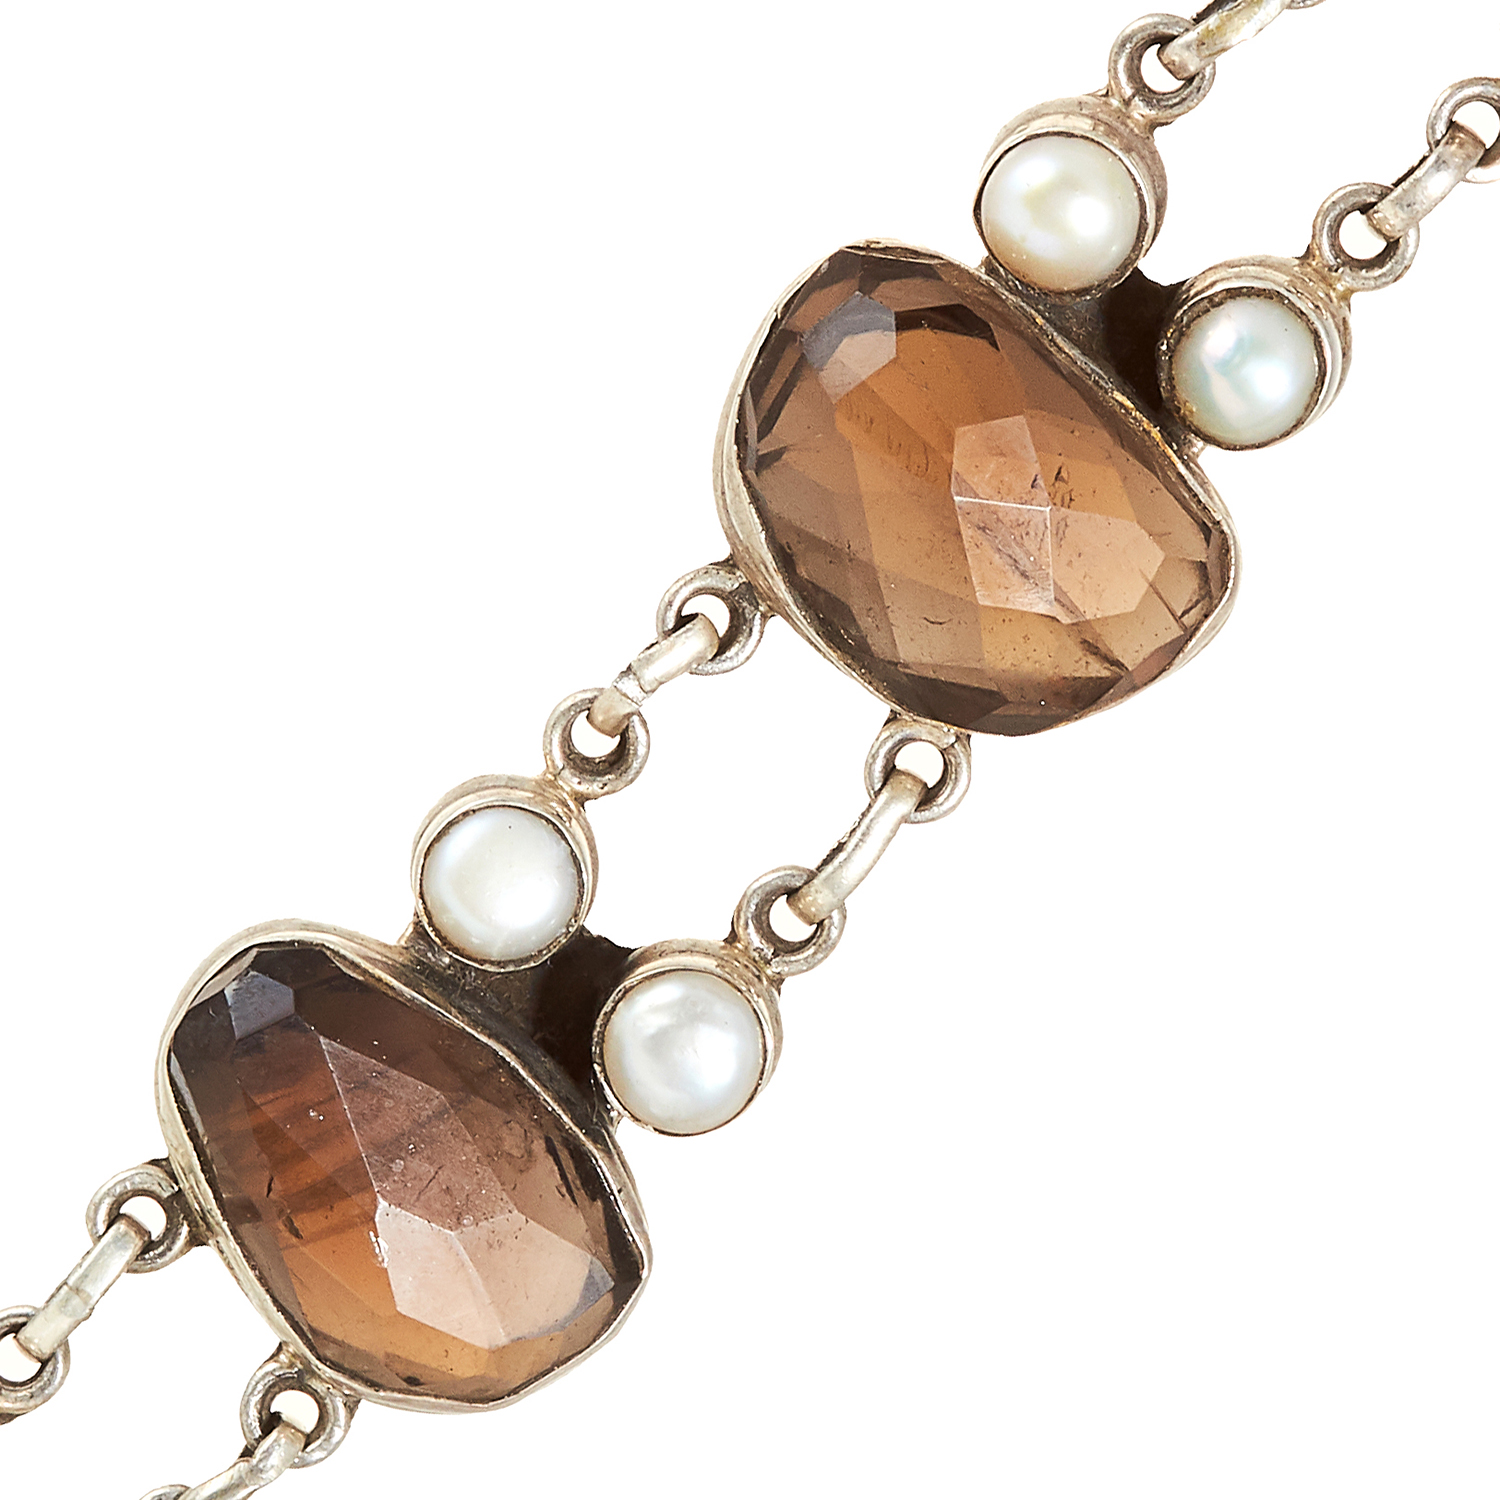 A SMOKEY QUARTZ AND PEARL BRACELET, INDIAN in sterling silver, set with four faceted smokey quartz - Image 2 of 2